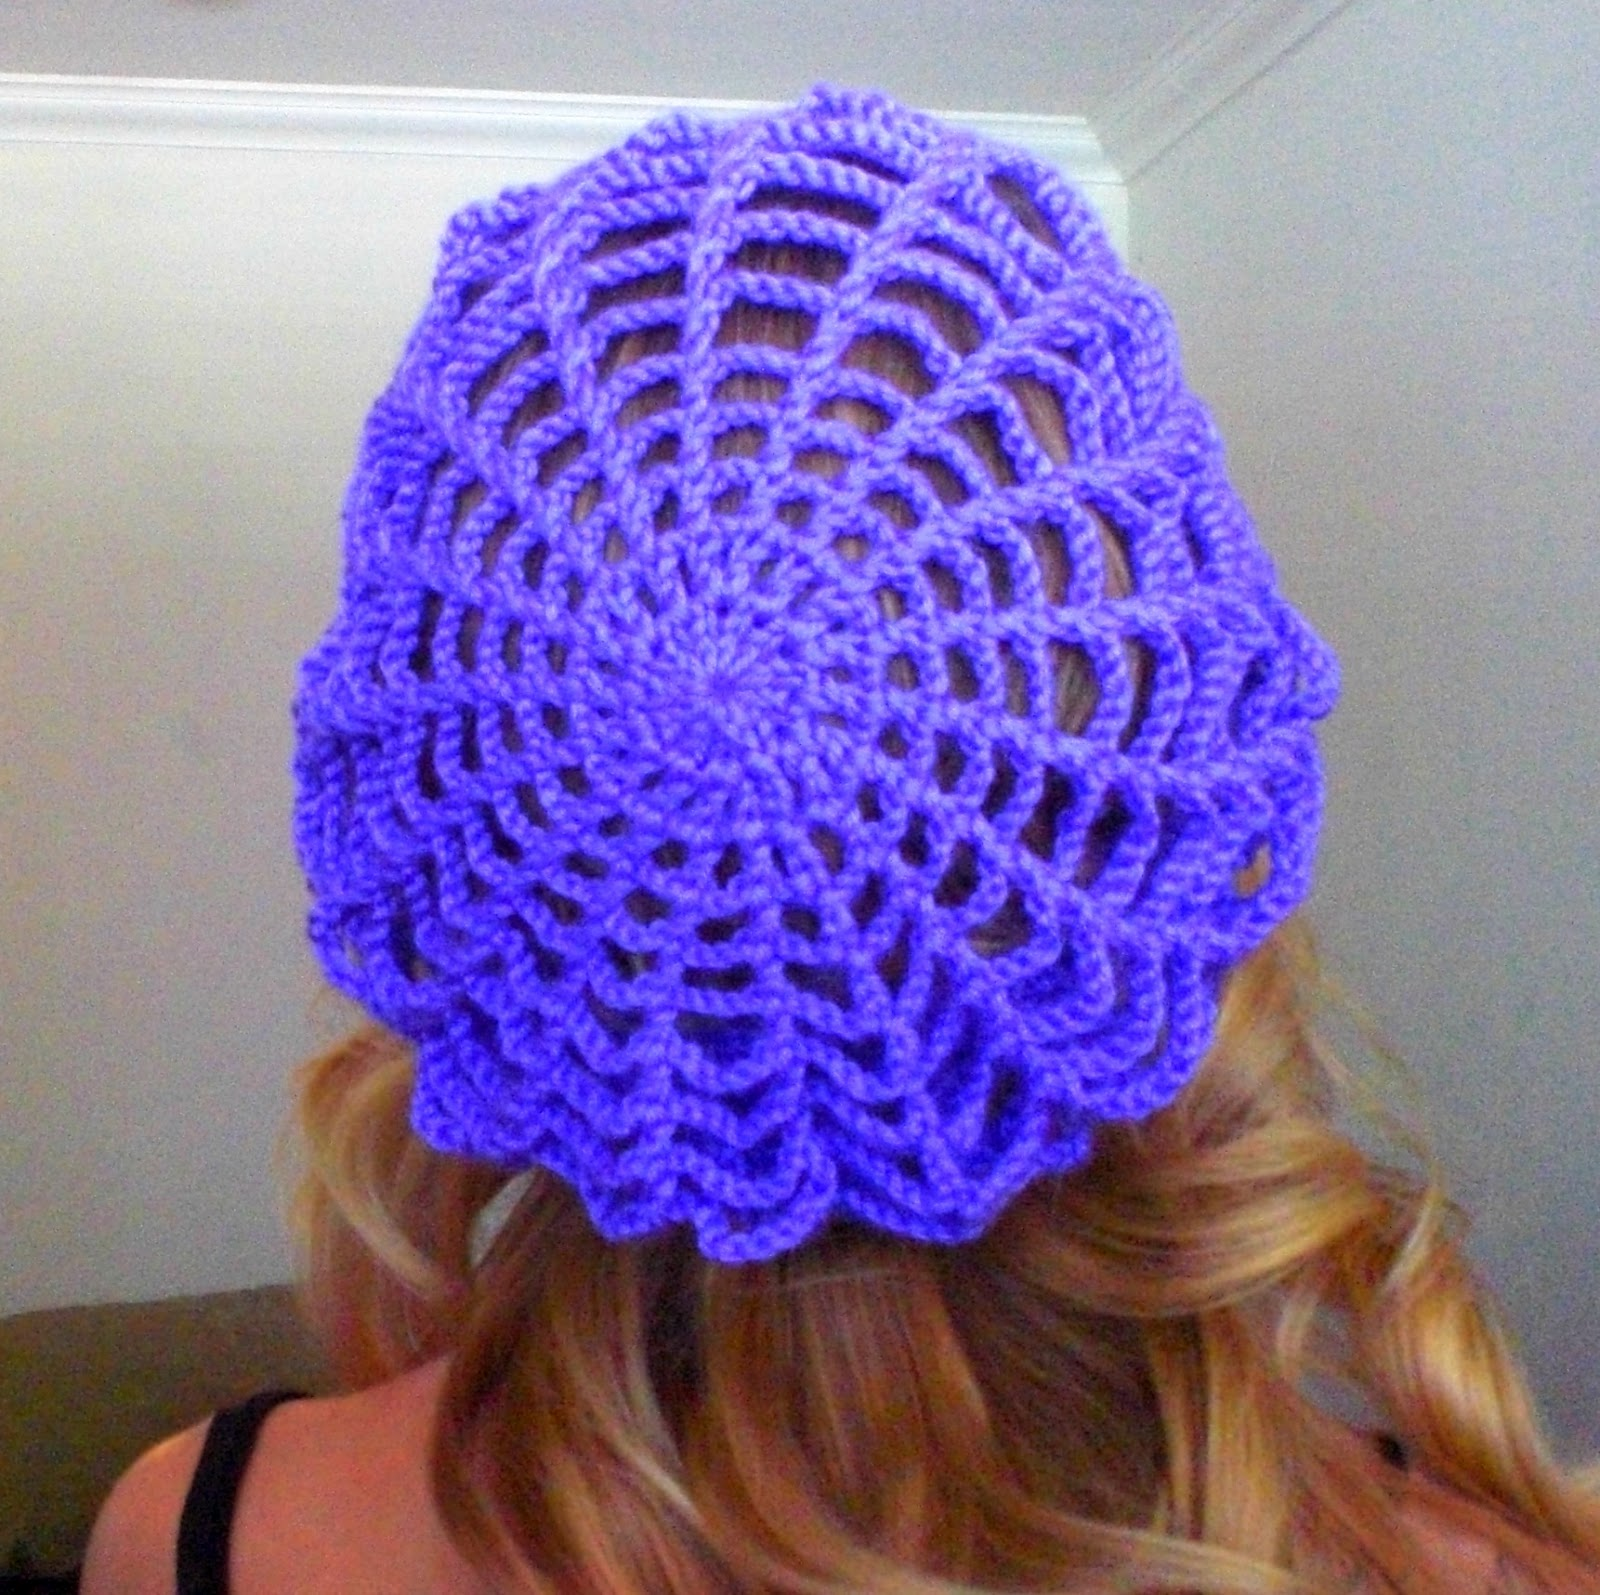 I'm looking for a CROCHET pattern for a hat like this?